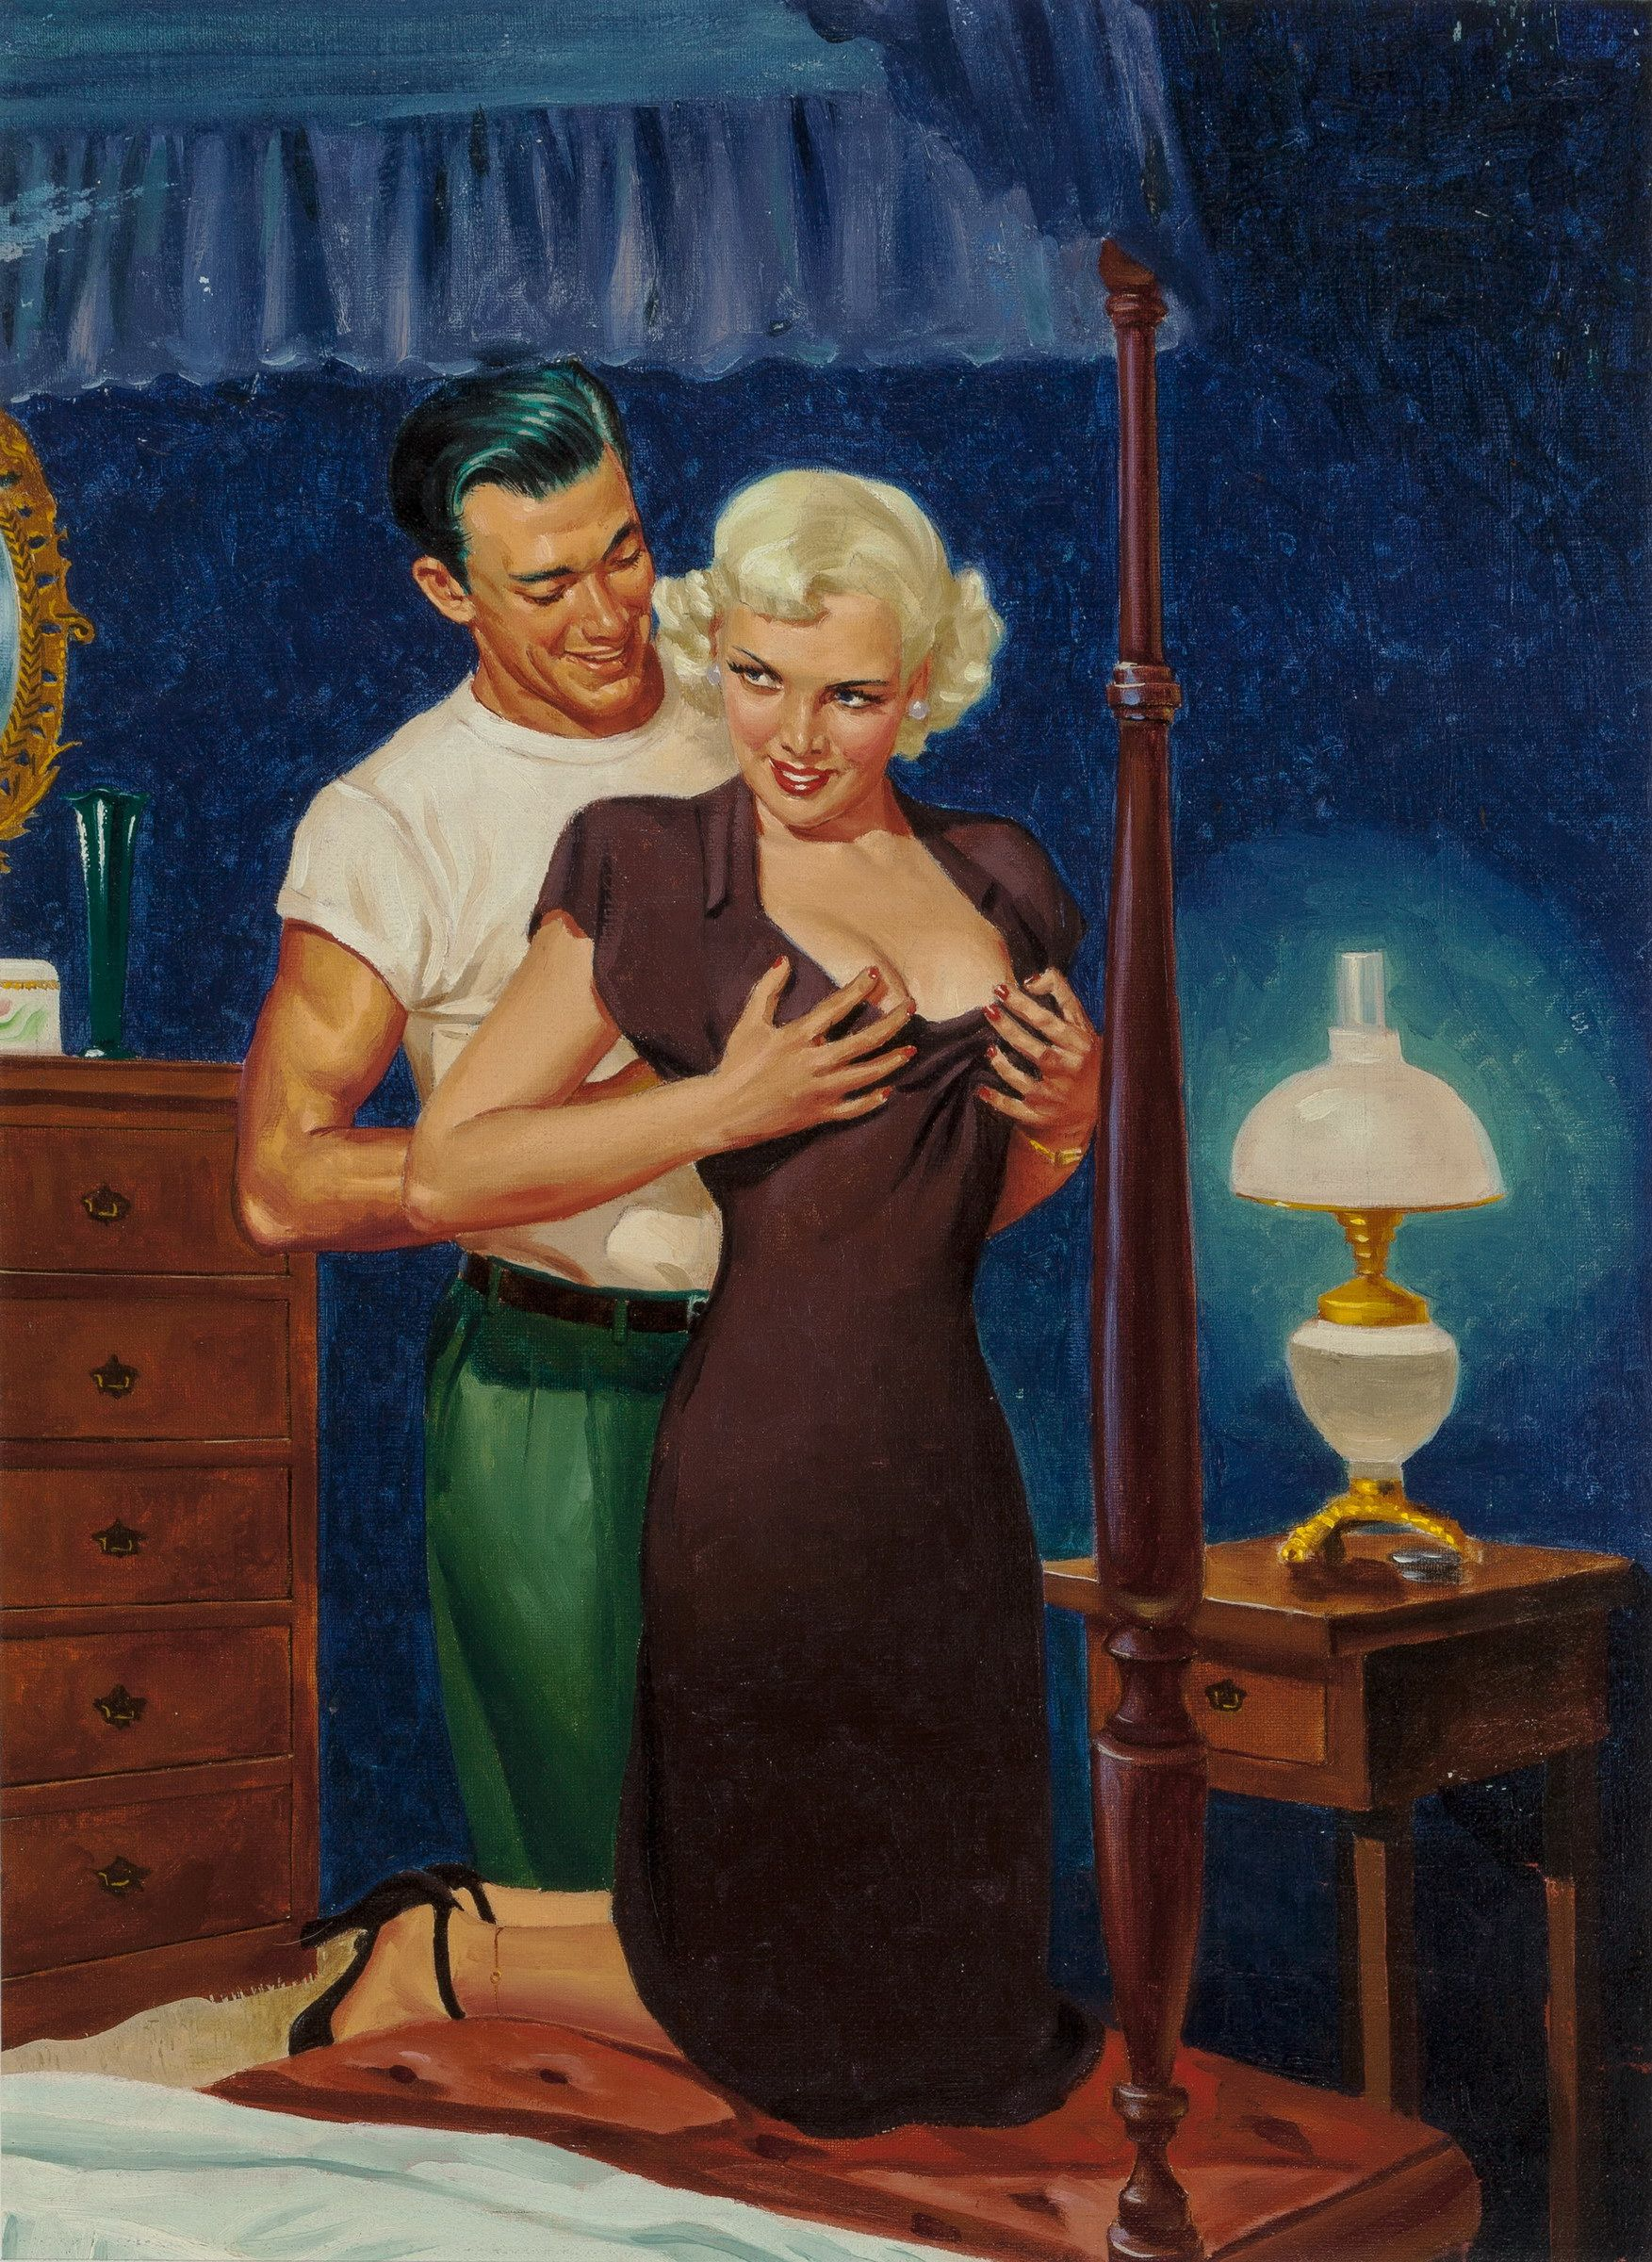 Erotic painting george gross